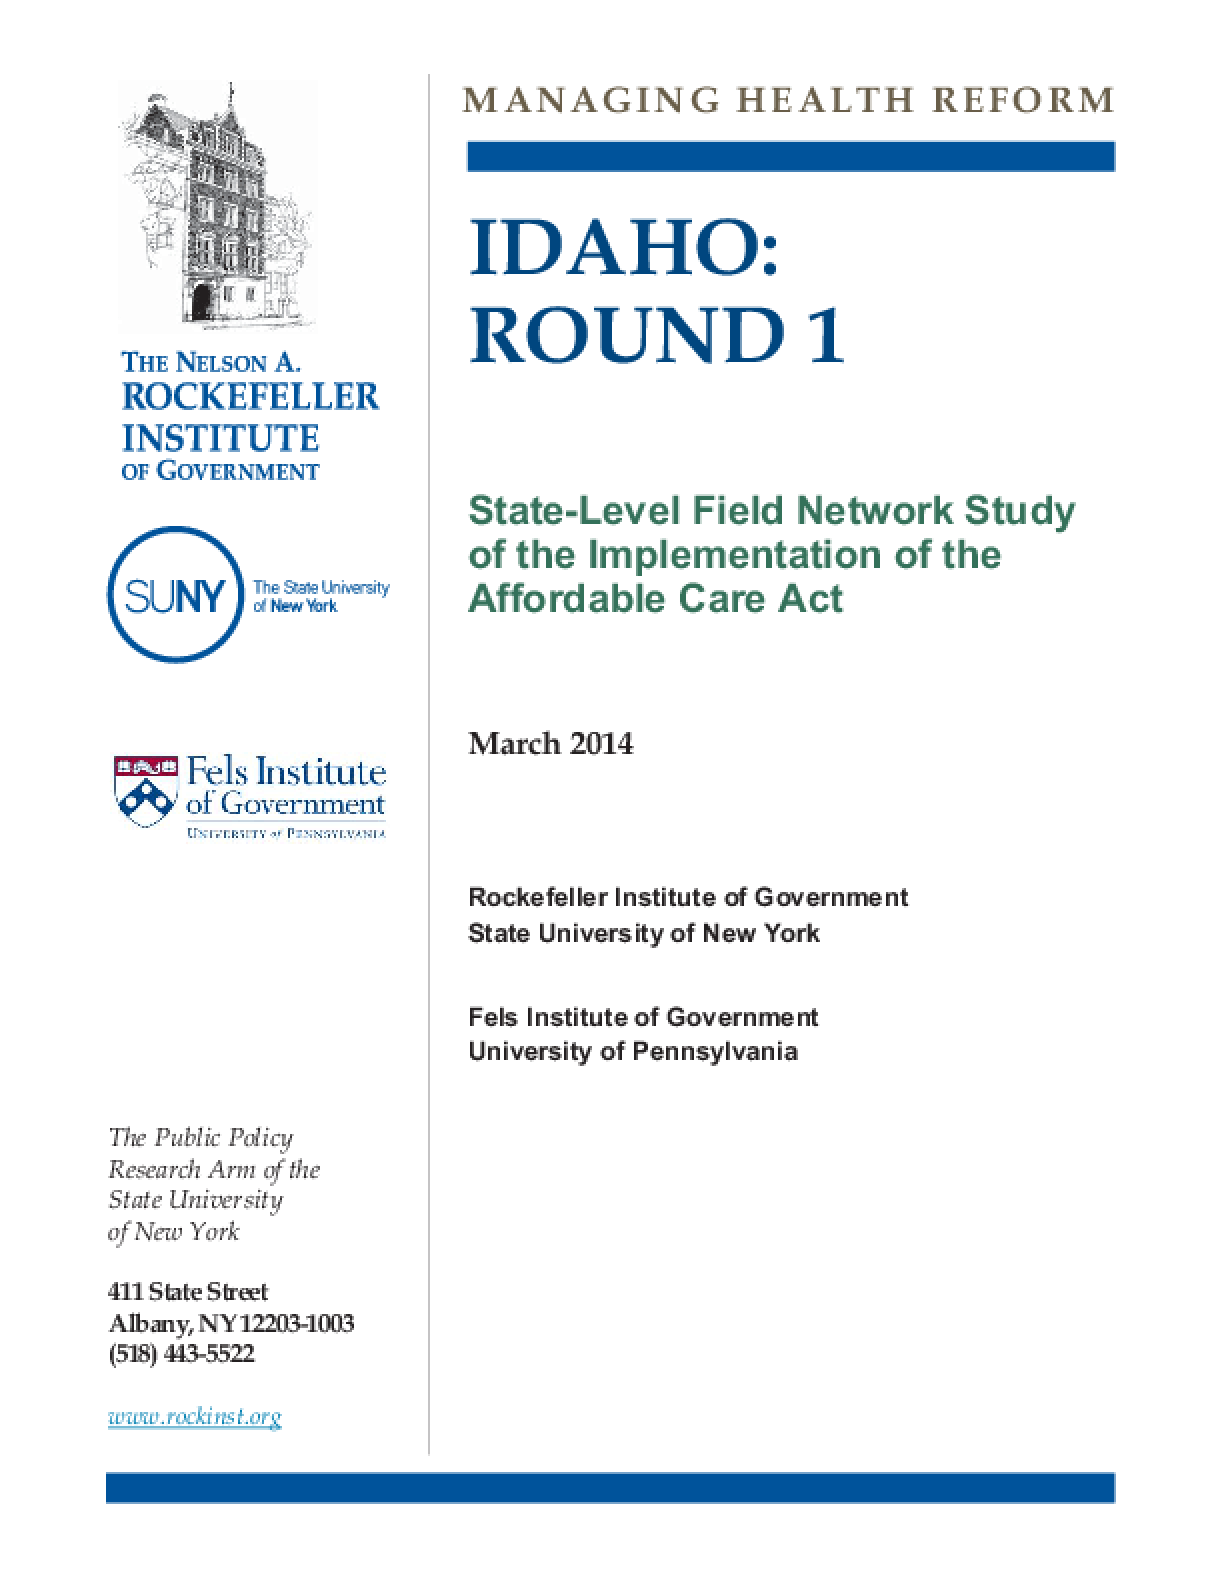 Idaho: Round 1 - State-Level Field Network Study of the Implementation of the Affordable Care Act